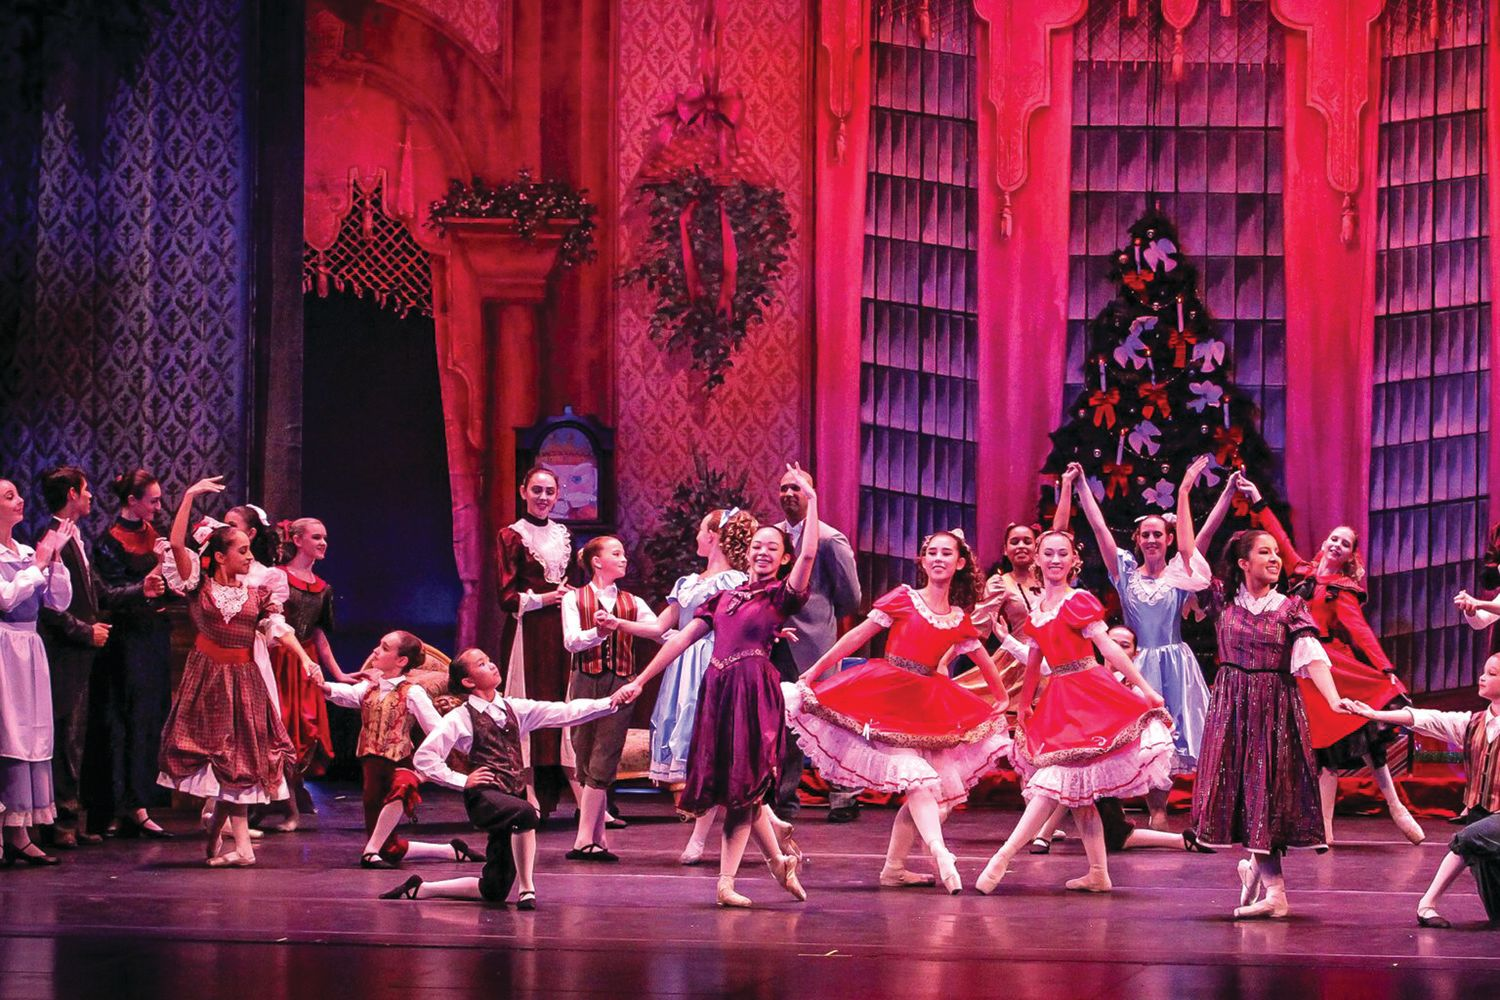 Nutcracker sarasota cuban ballet school party s6pmlb